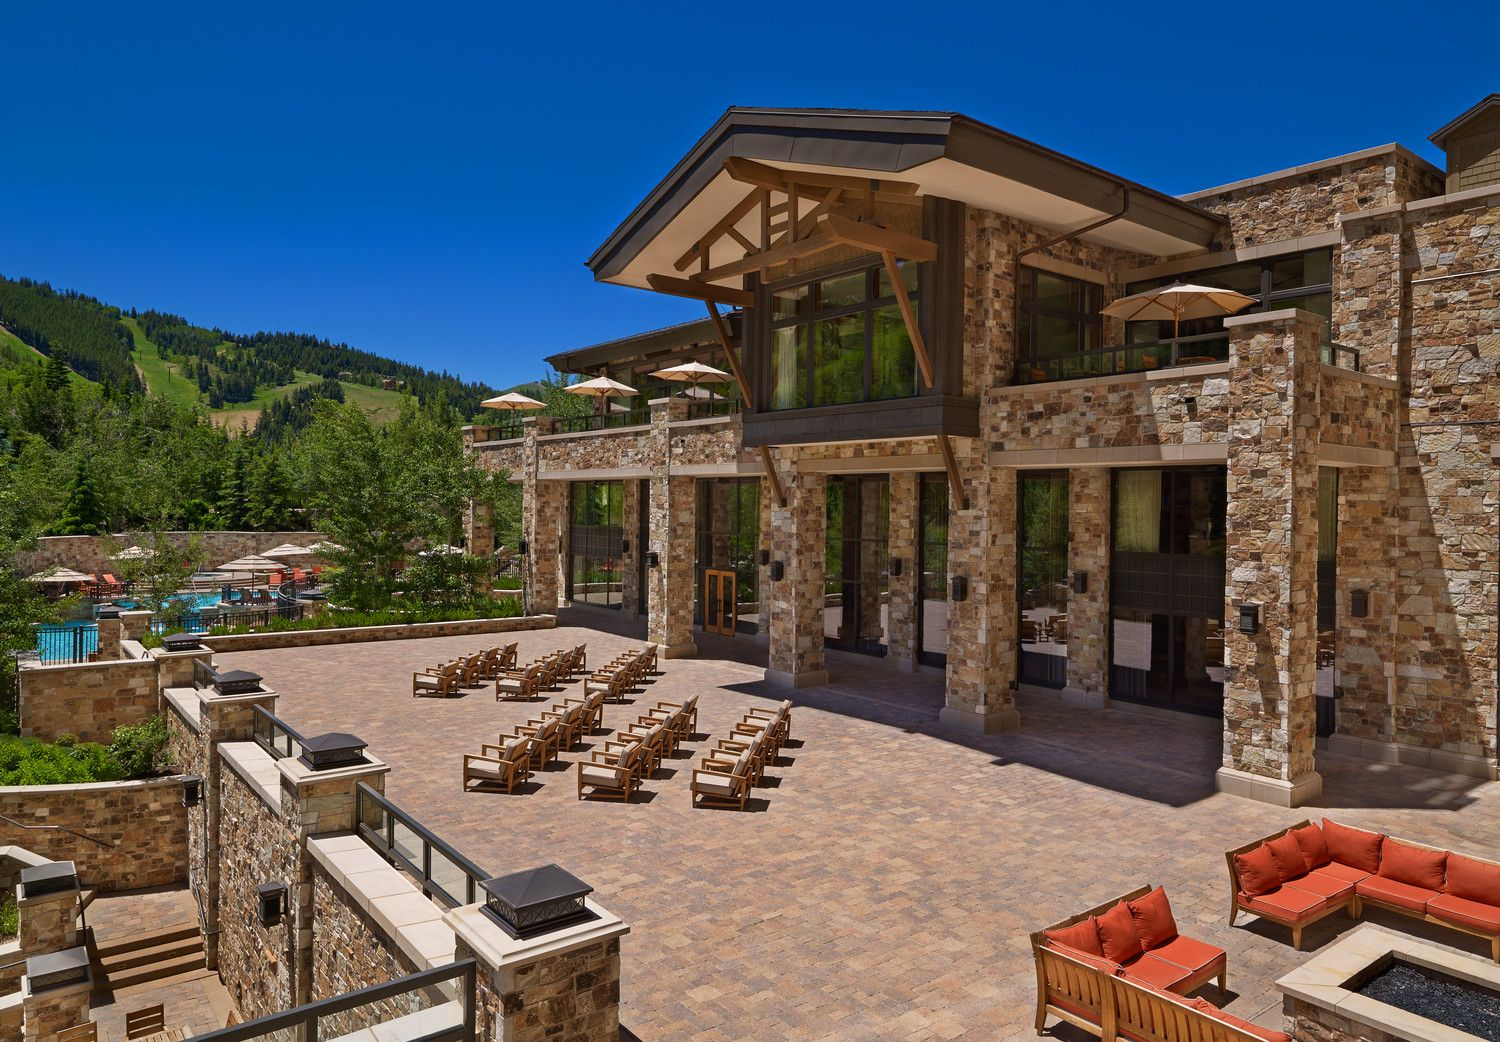 The Astor Terrace and Firepit at The St. Regis Deer Valley ...